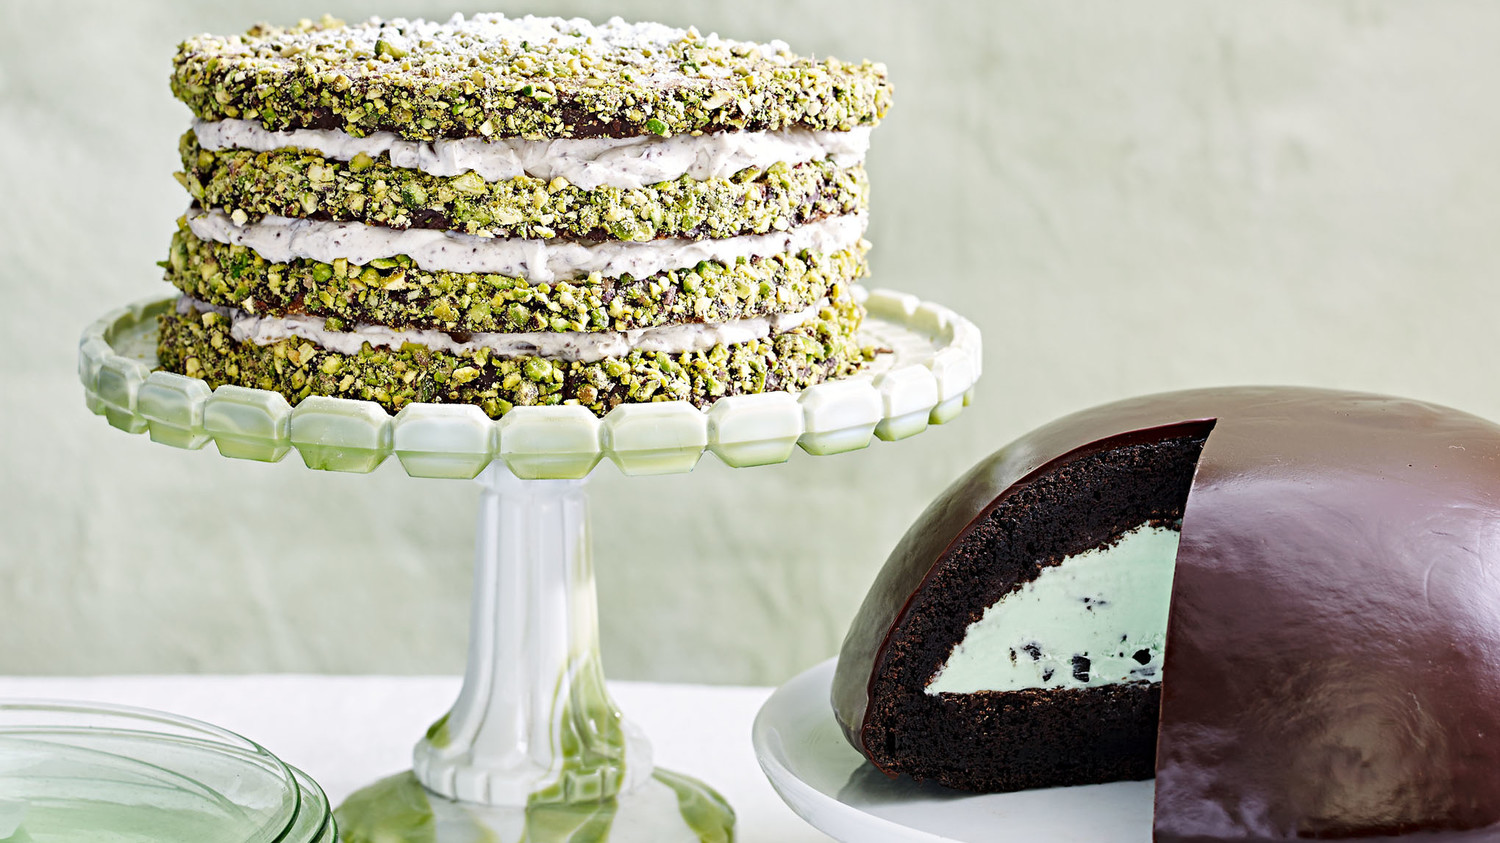 Cakes For Any Occasion When You Need A Sweet Sliceable